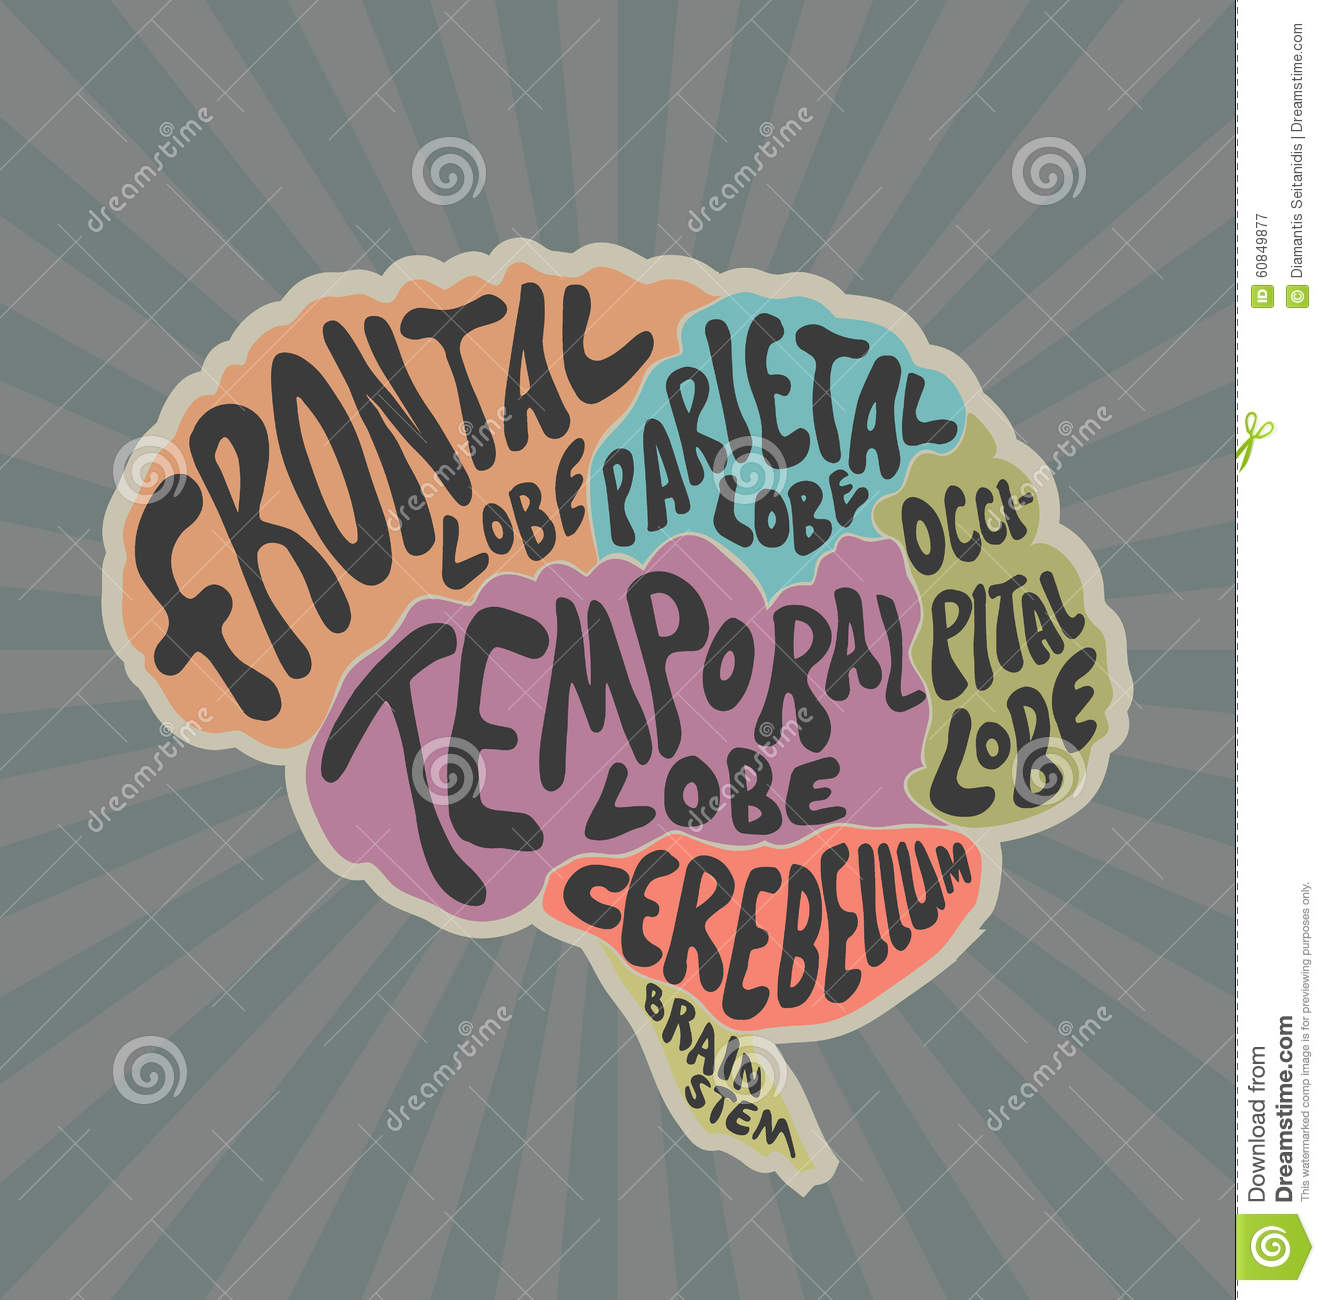 Parts Of The Human Brain Stock Vector Illustration Of Labels 60849877